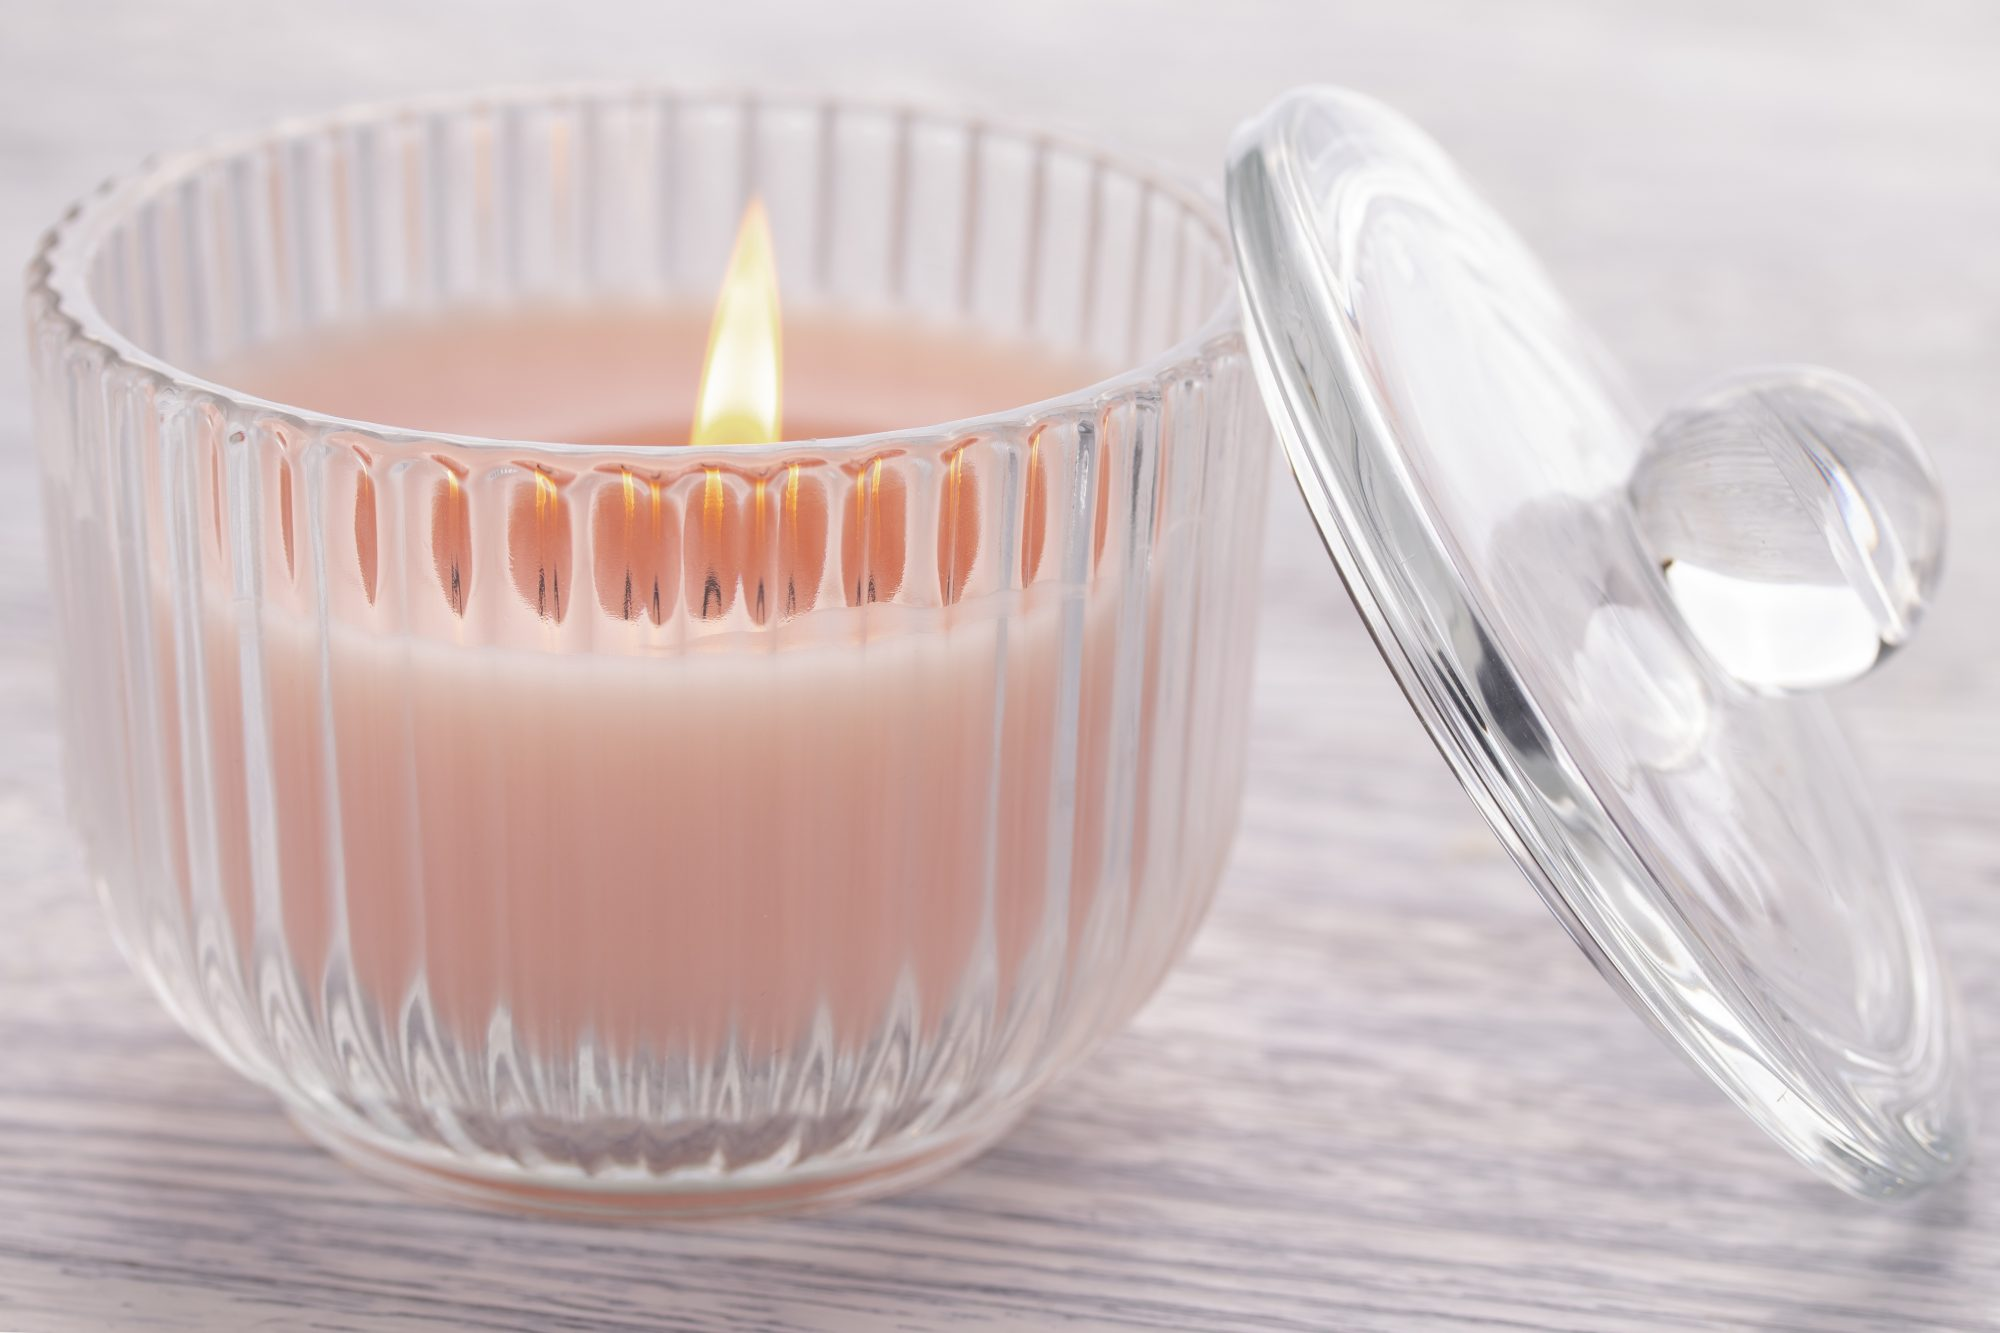 Pink candle burning in a glass beaker on an old white wooden table